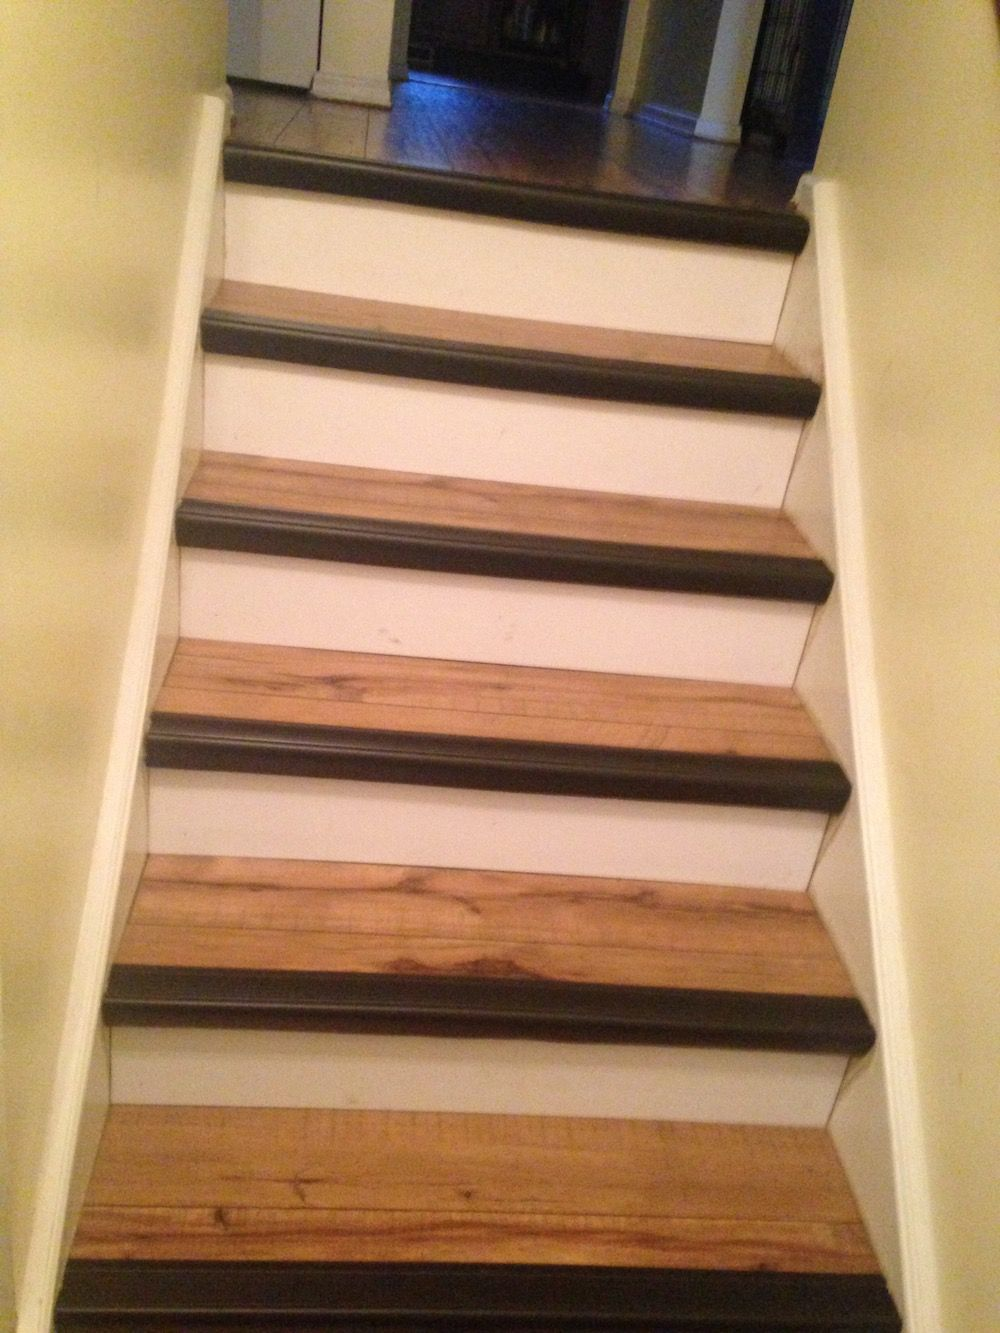 Rubber mats for stairs - Contrast Stair Nosing Makes Steps Safer And Looks Stylish Which Contrasting Color Would